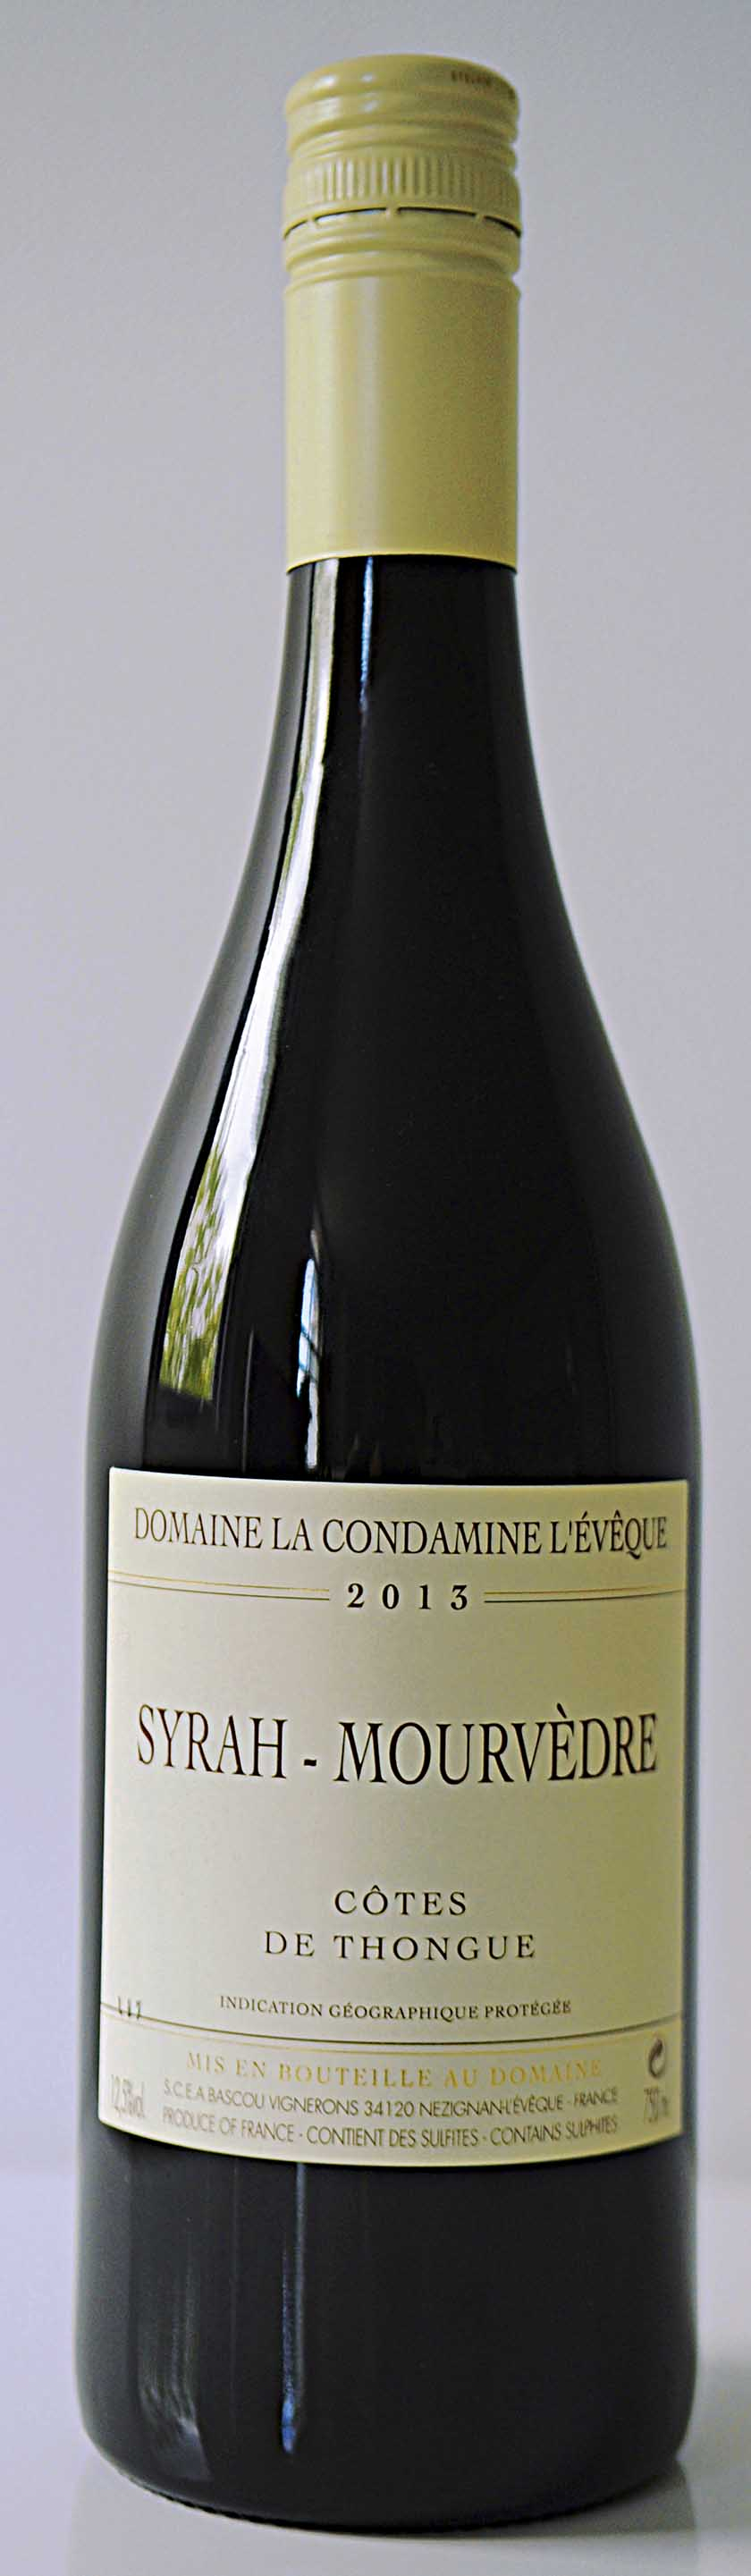 Domaine Condamine Syrah/Mourvèdre 2013, Cotes de Thongue, France, £8